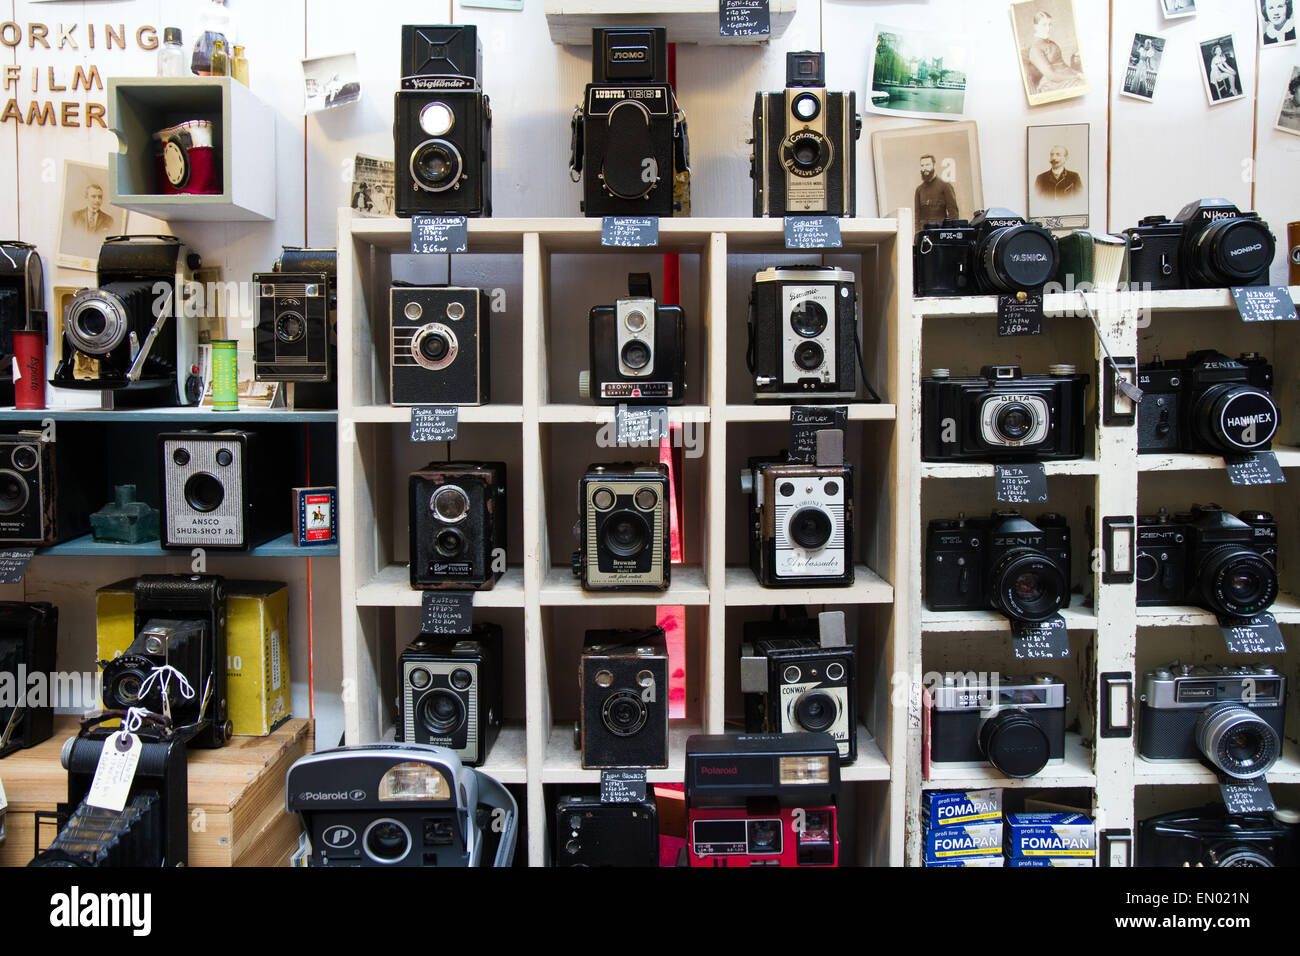 Second Hand Items For Sale In The Dry Bridge Bazaar Flea: Second-hand Cameras On Sale At Camden Market, London Stock